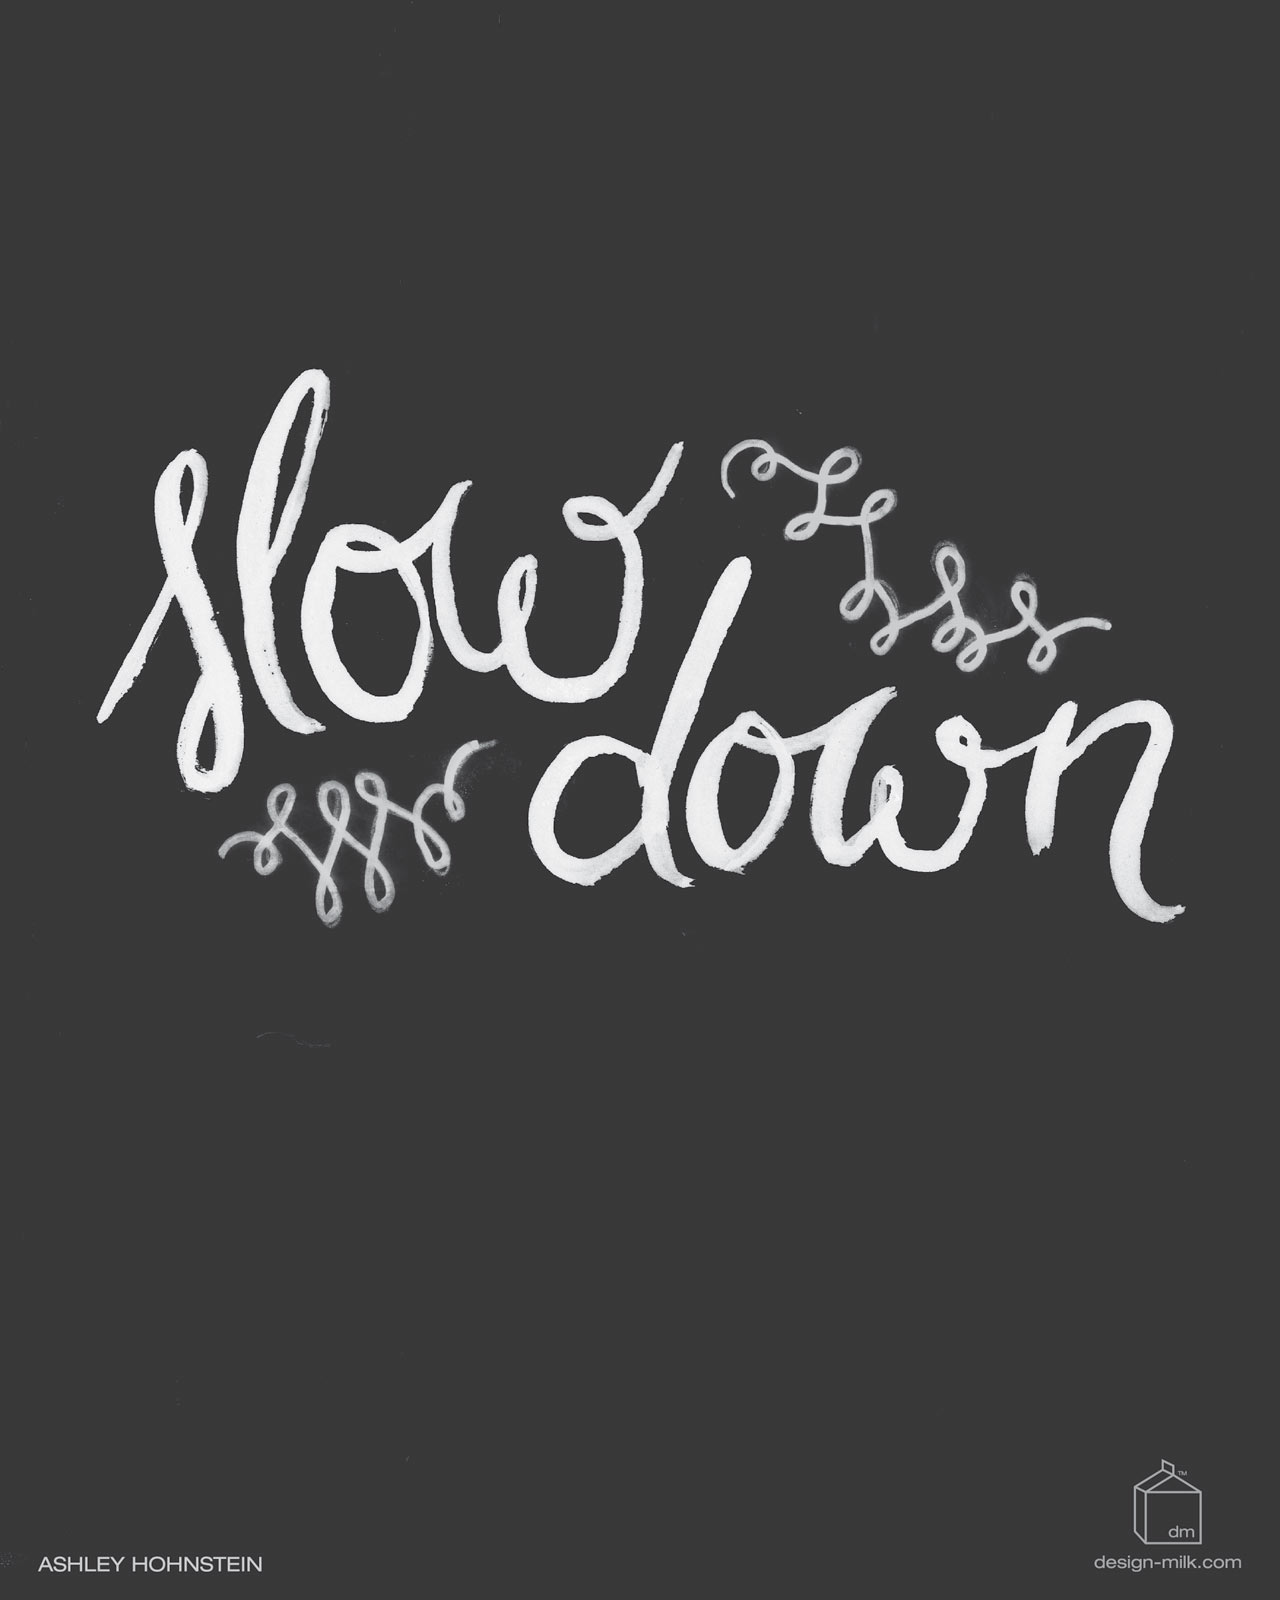 Slow-down-illustration-Design-Milk-Hohnstein